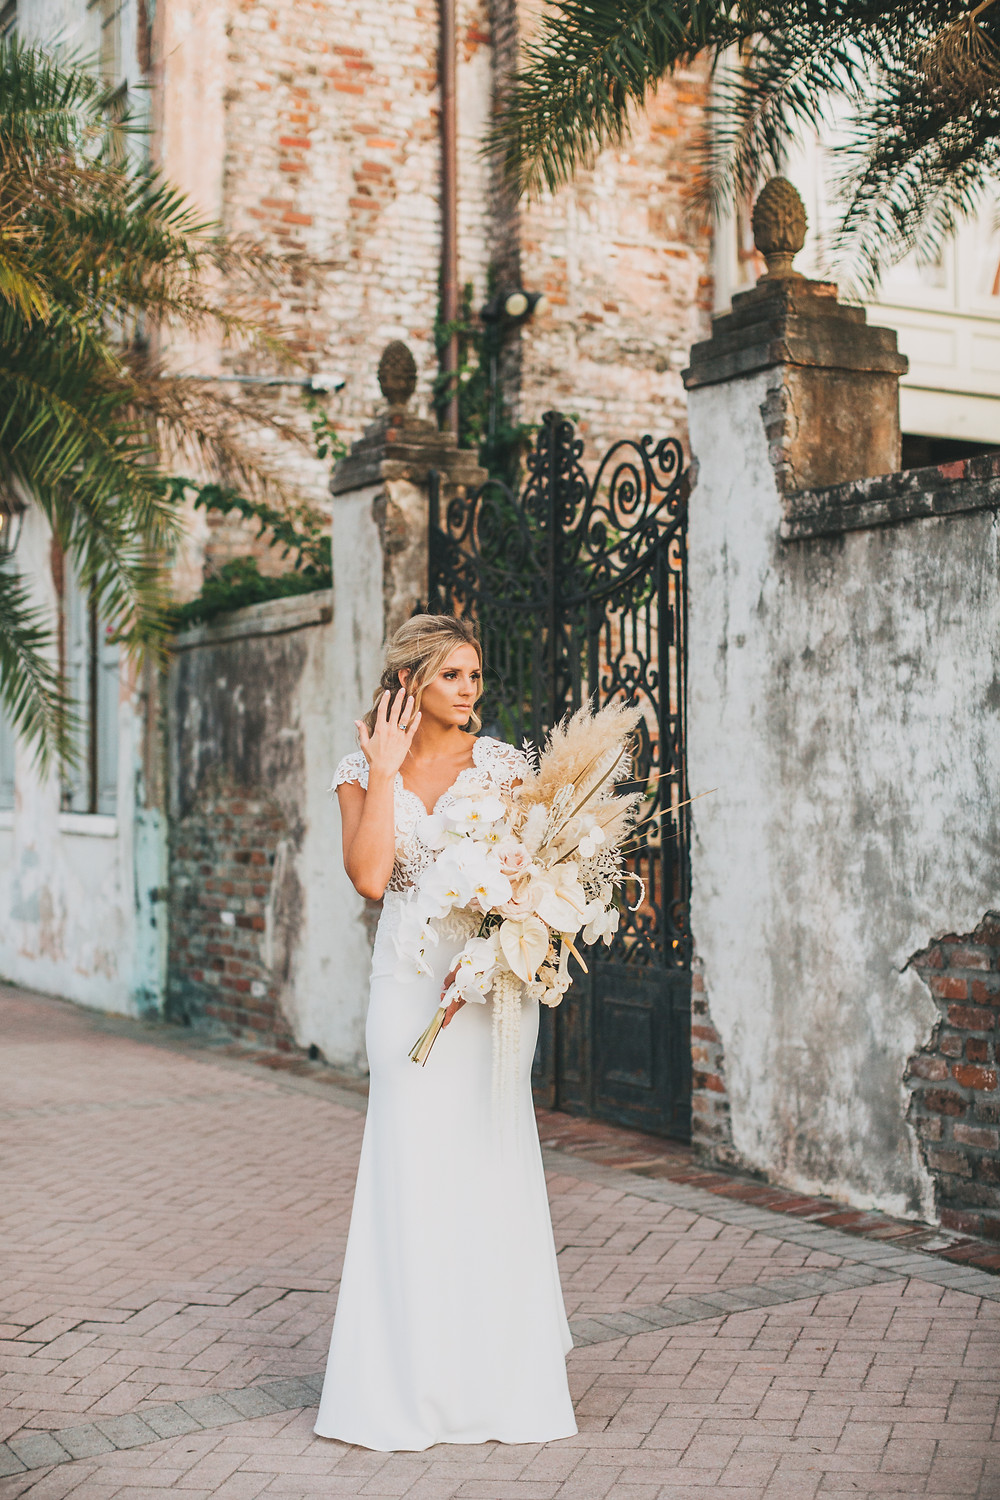 Lovegood Wedding & Event Rentals, New Orleans Vintage Rental Company for Corporate, Parties, and Weddings | Lounge Furniture in NOLA, Specialty Rentals, Decor across the Southeast, Boho Bouquet and Bride